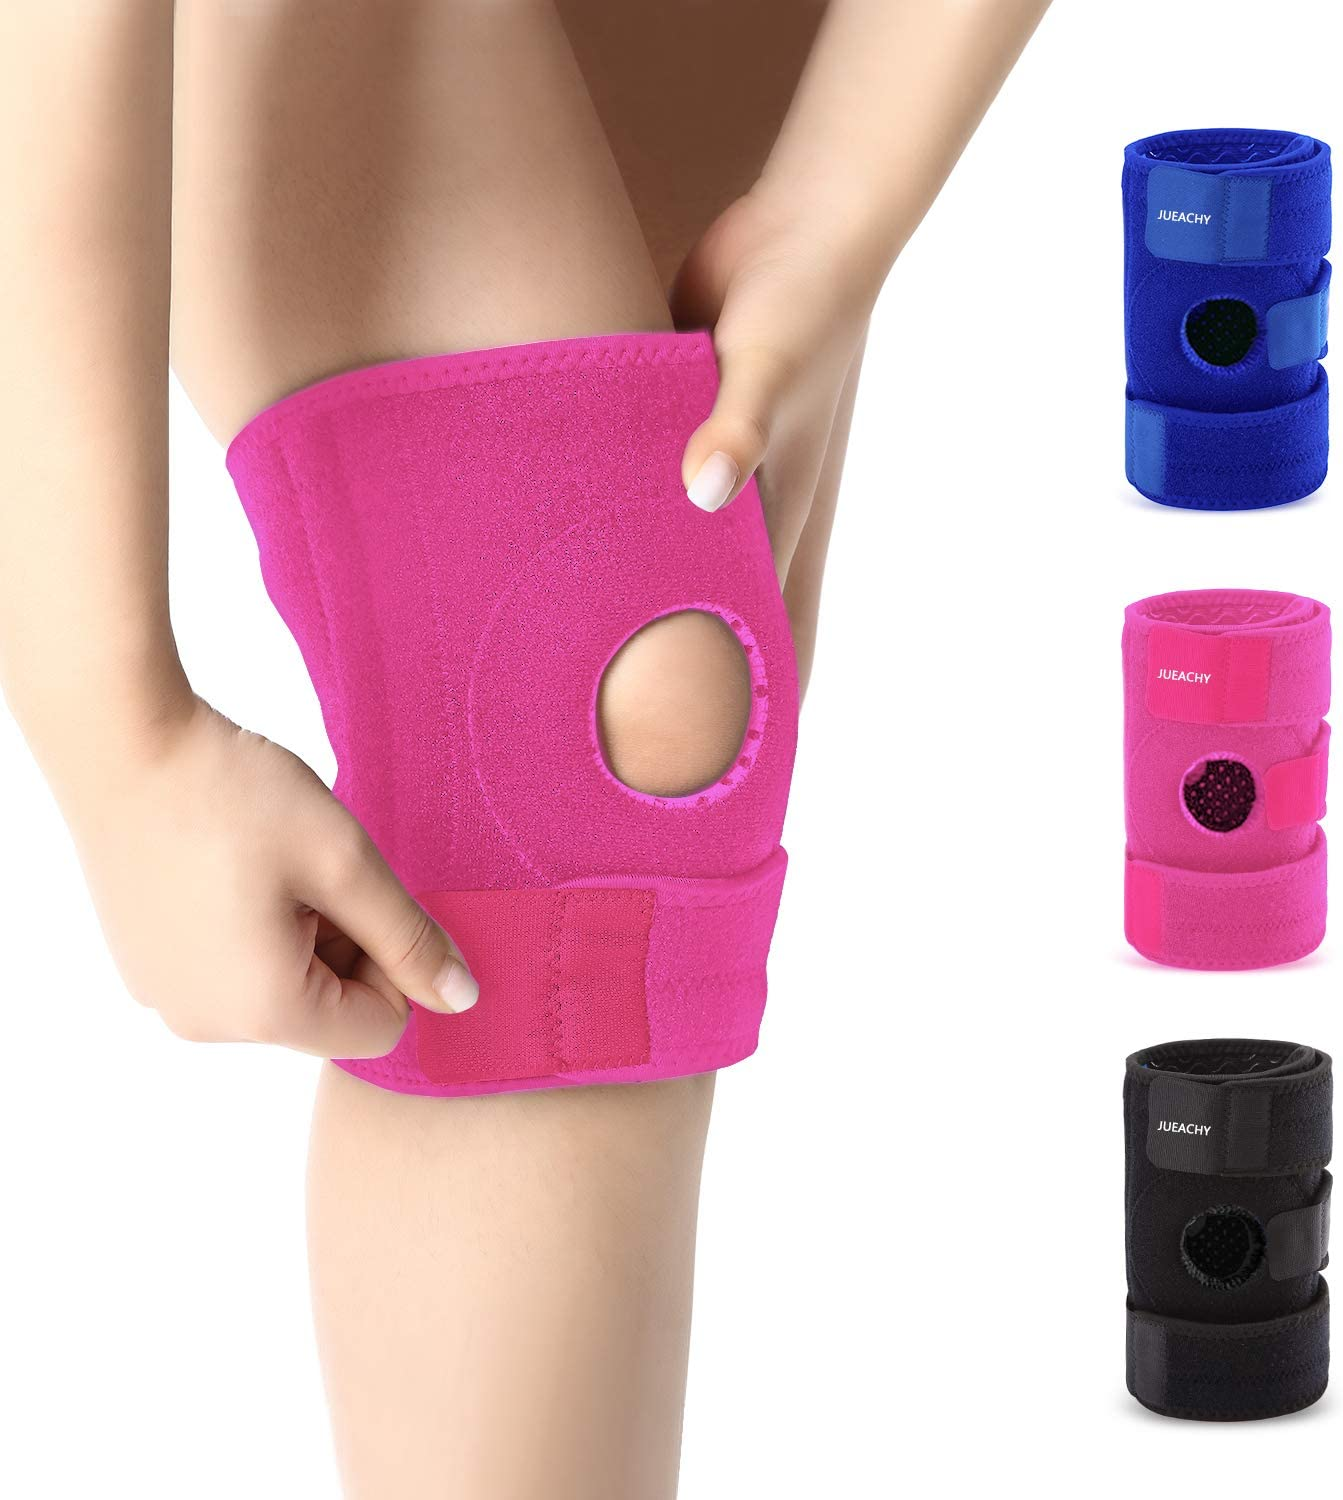 Jueachy Knee Limited time cheap sale Brace for Man Protector Women Run Support Kansas City Mall